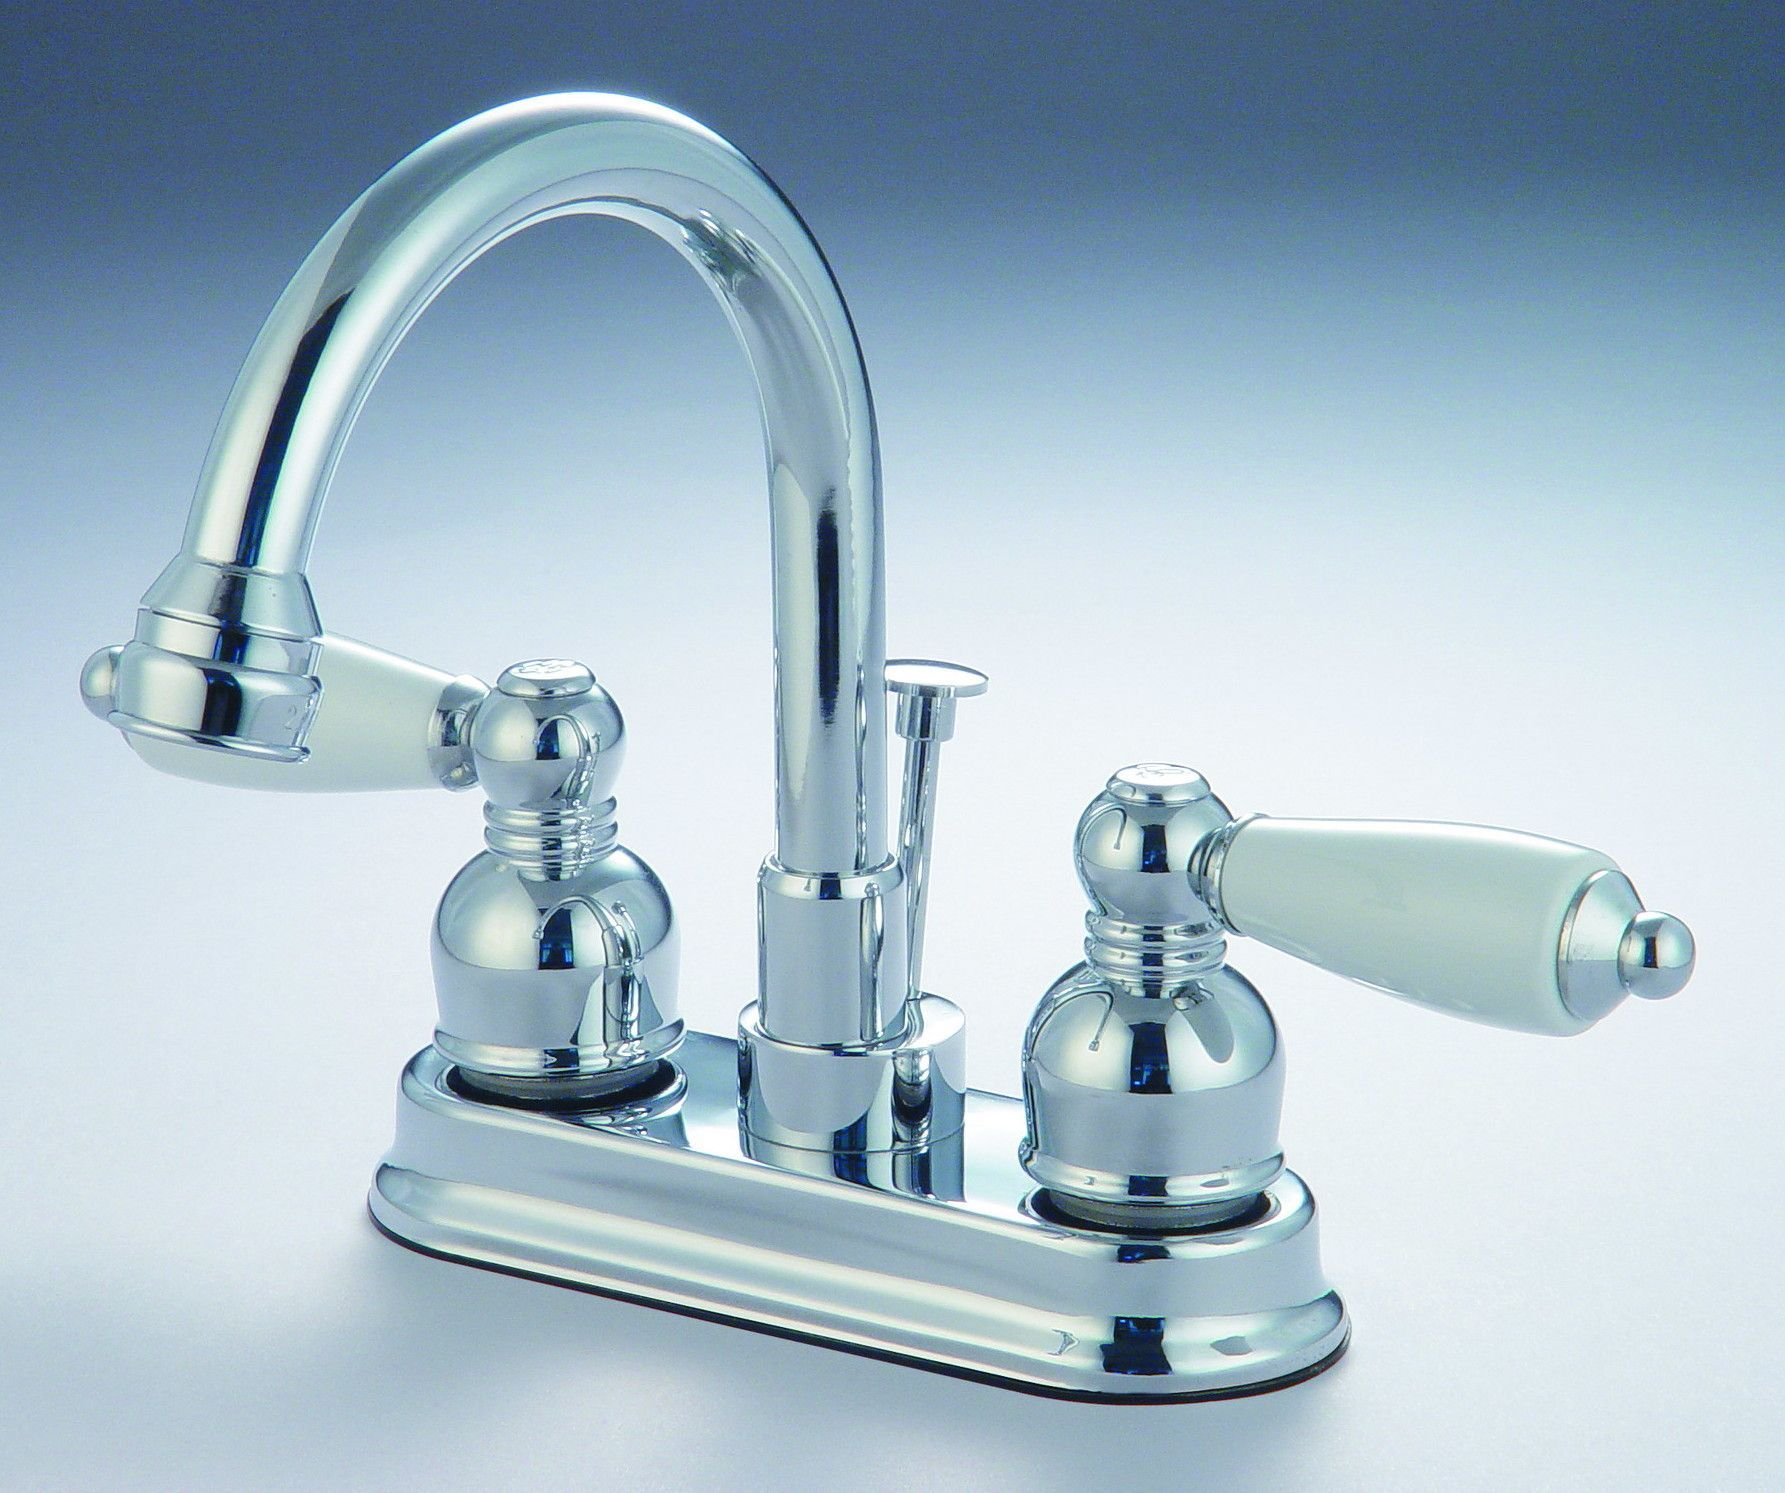 Standard Bathroom Faucet Double Handle | Products | Pinterest | Tap ...